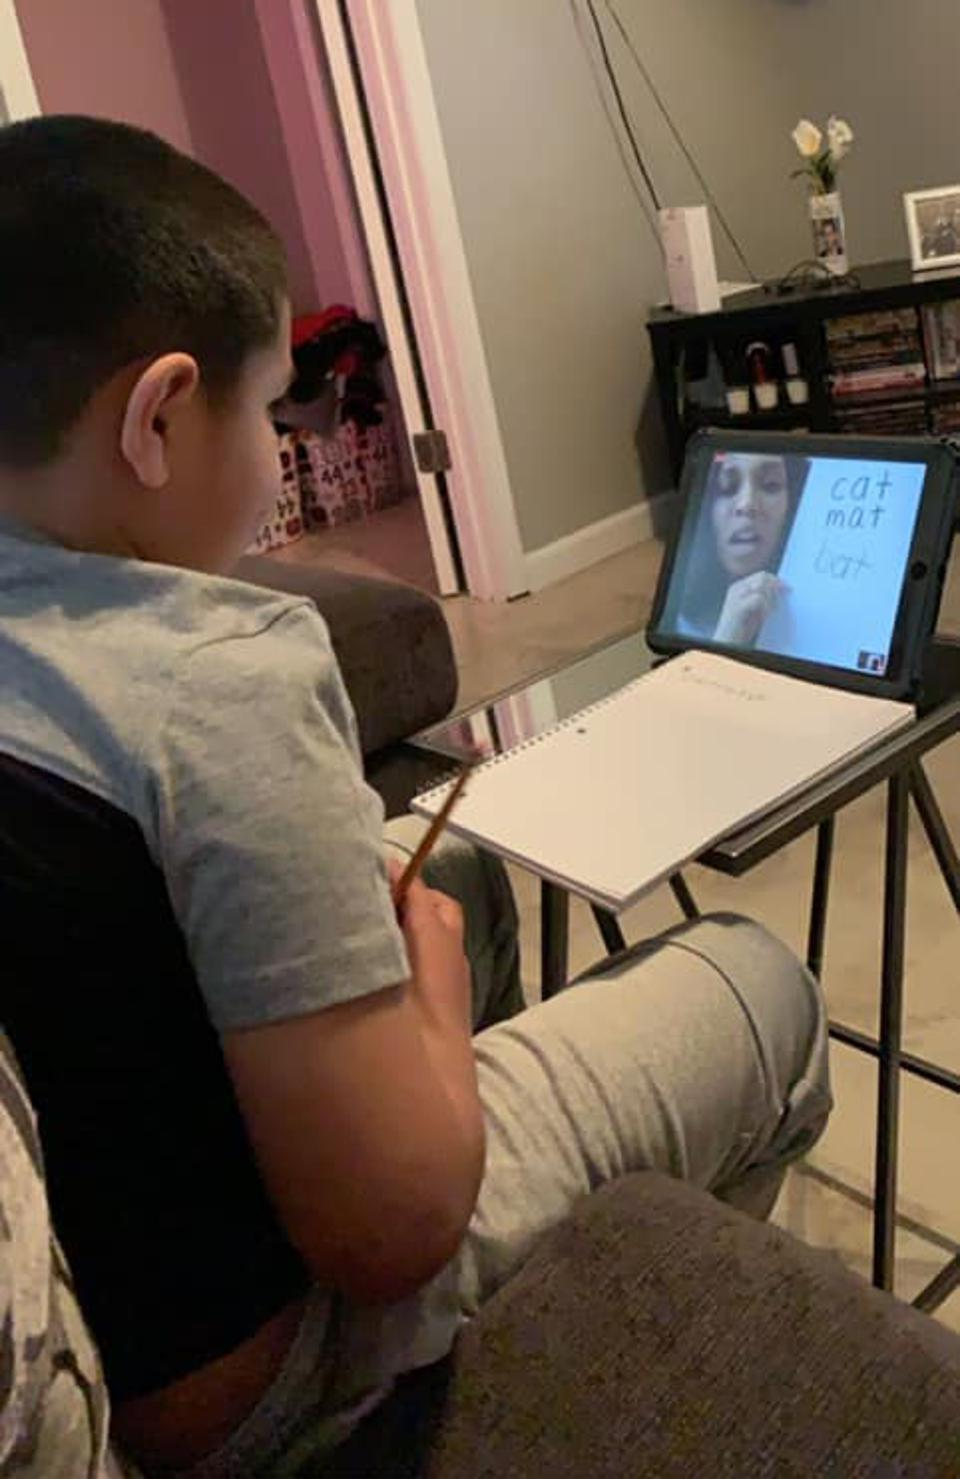 A boy takes notes and video chats with his ELA teacher.